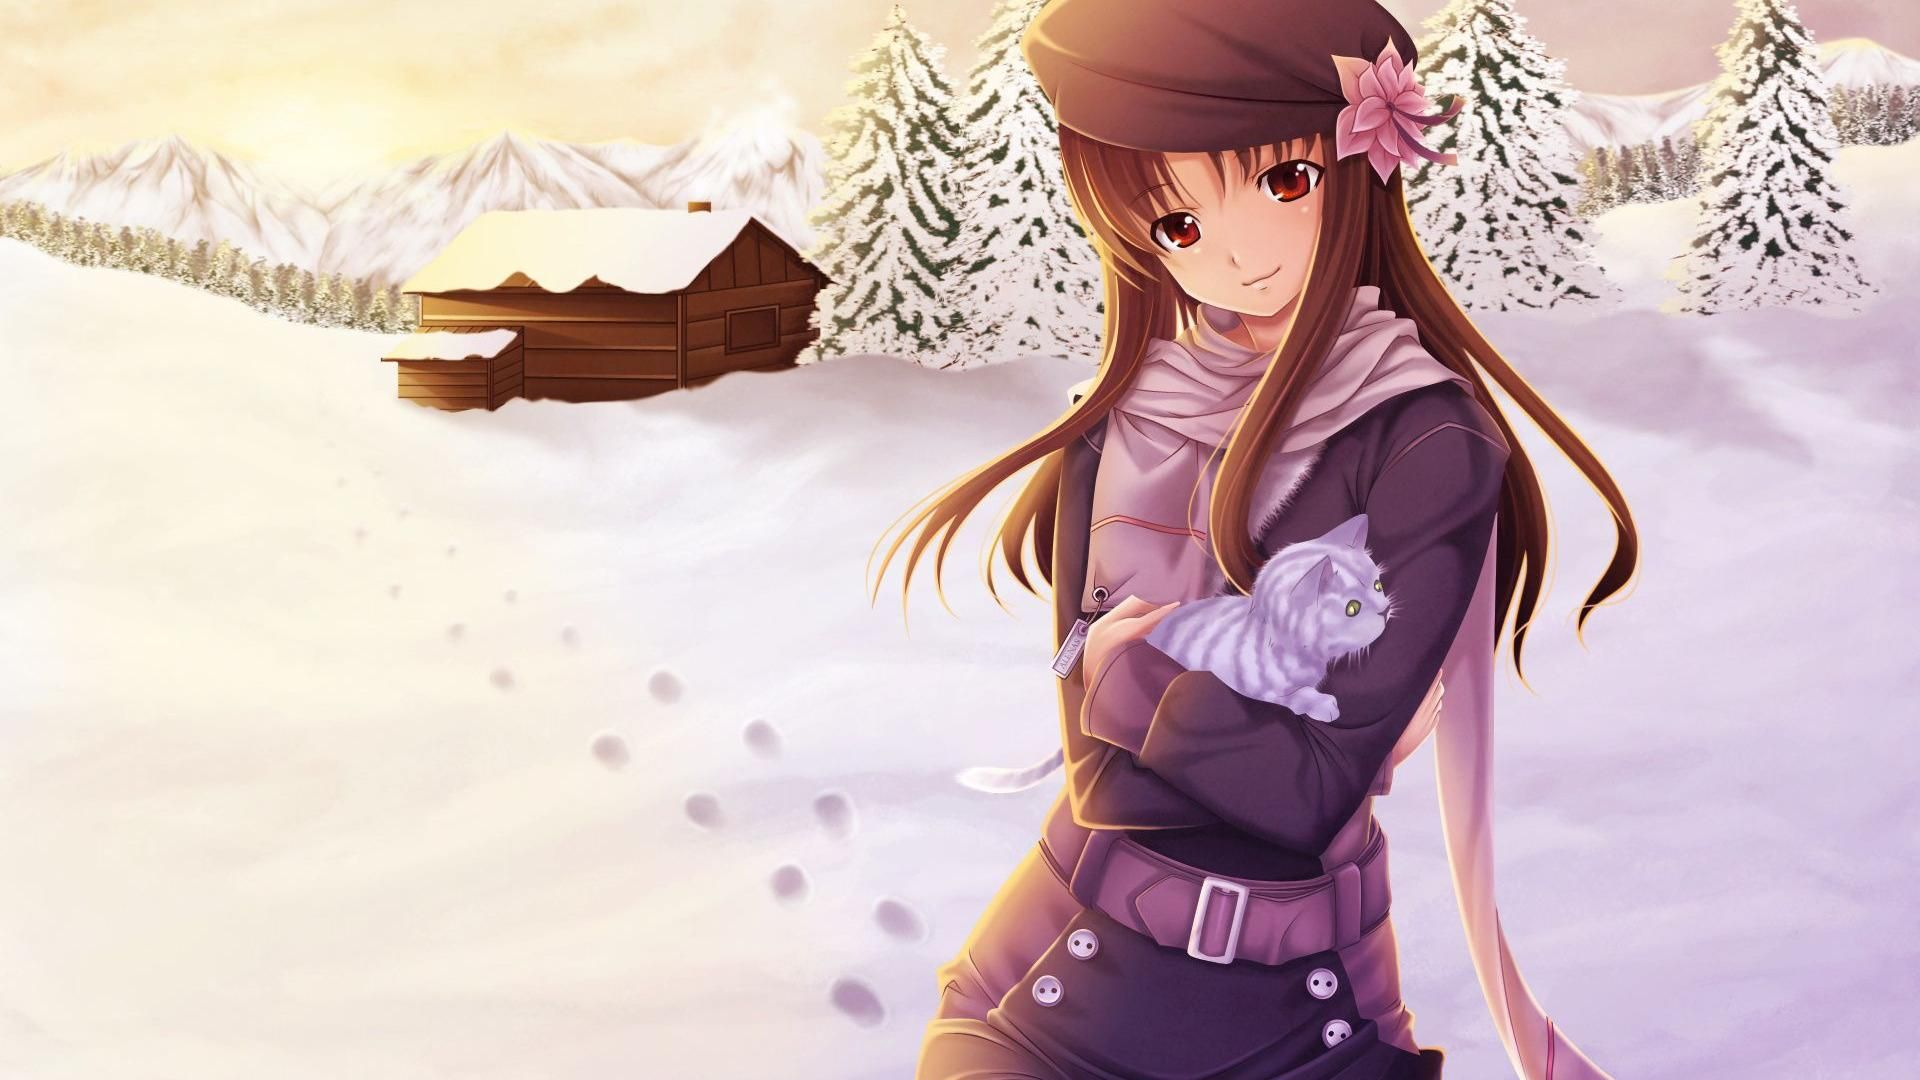 Cute Anime Girl HD Wallpapers Find best latest Cute Anime Girl HD